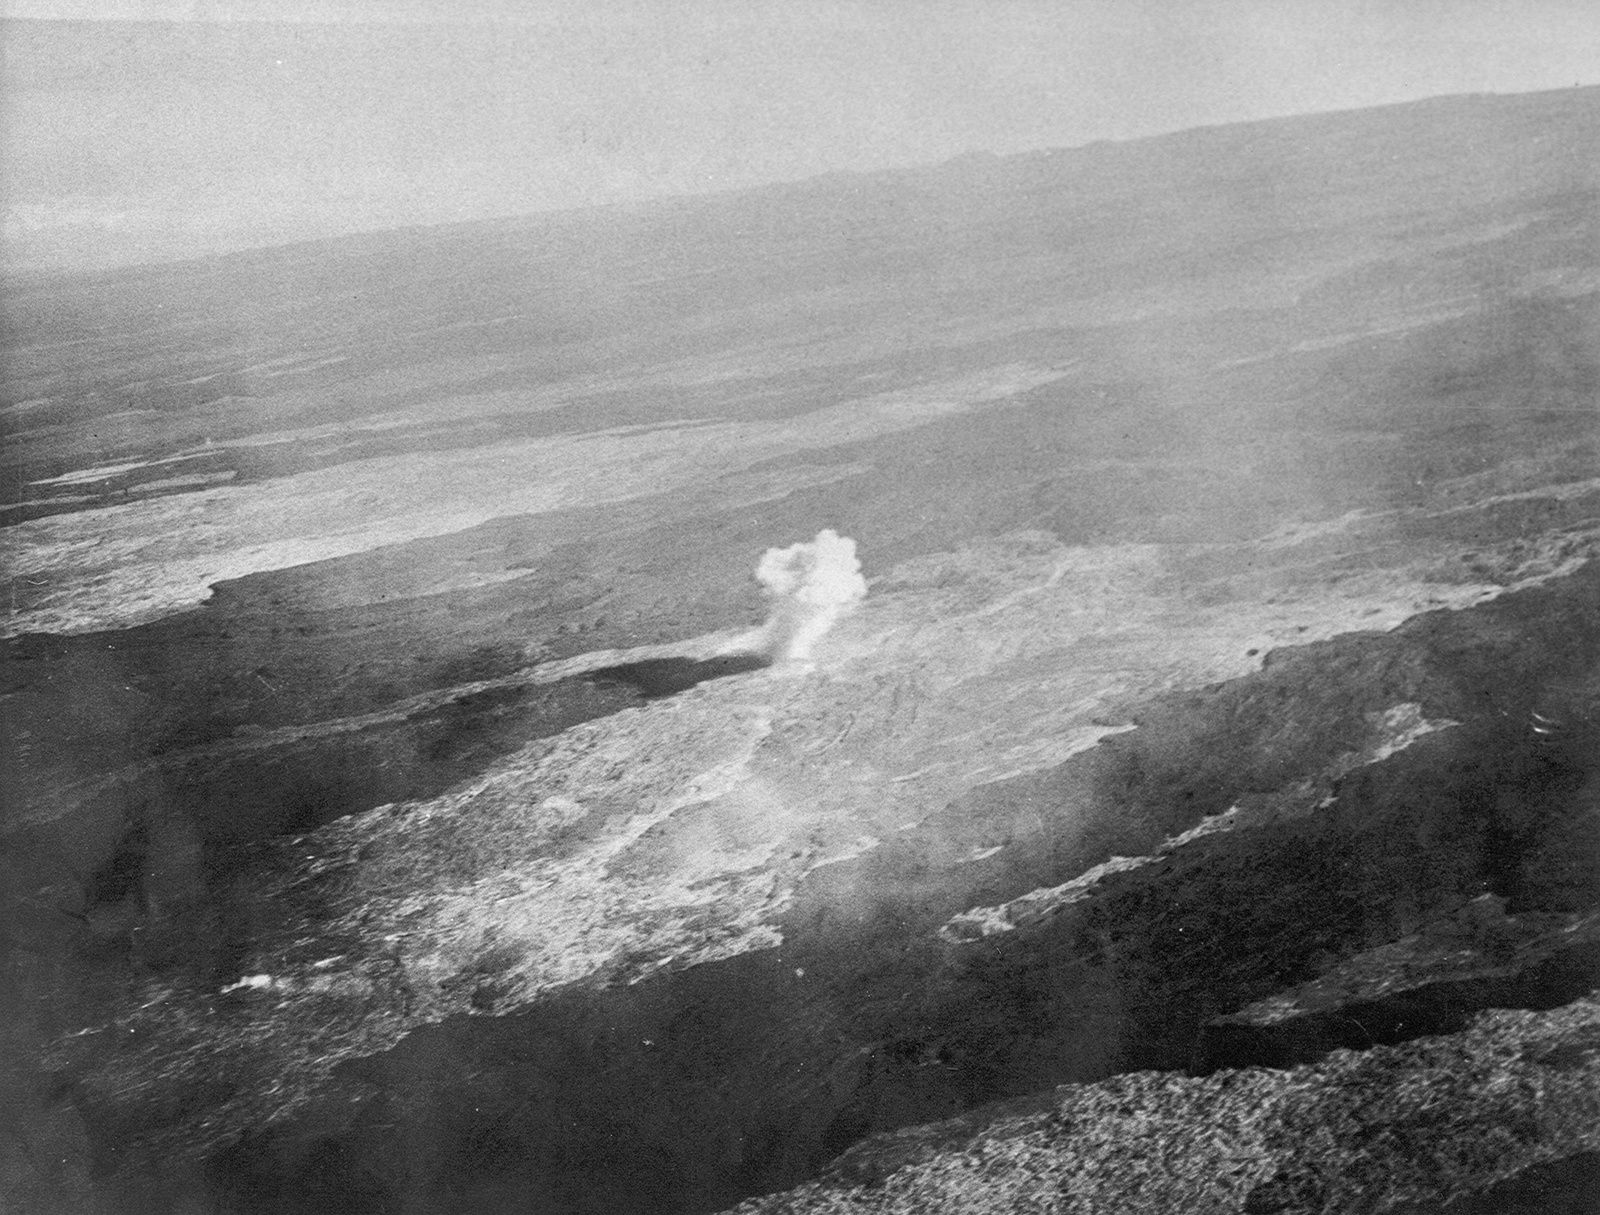 Détonation d'une bombe au Mauno Loa lors du bombardement de la source de la coulée de lave le 27 décembre 1935 (située à une hauteur de 2.590 m) - Photo by Army Air Corps, 11th Photo Section. PC: USGS